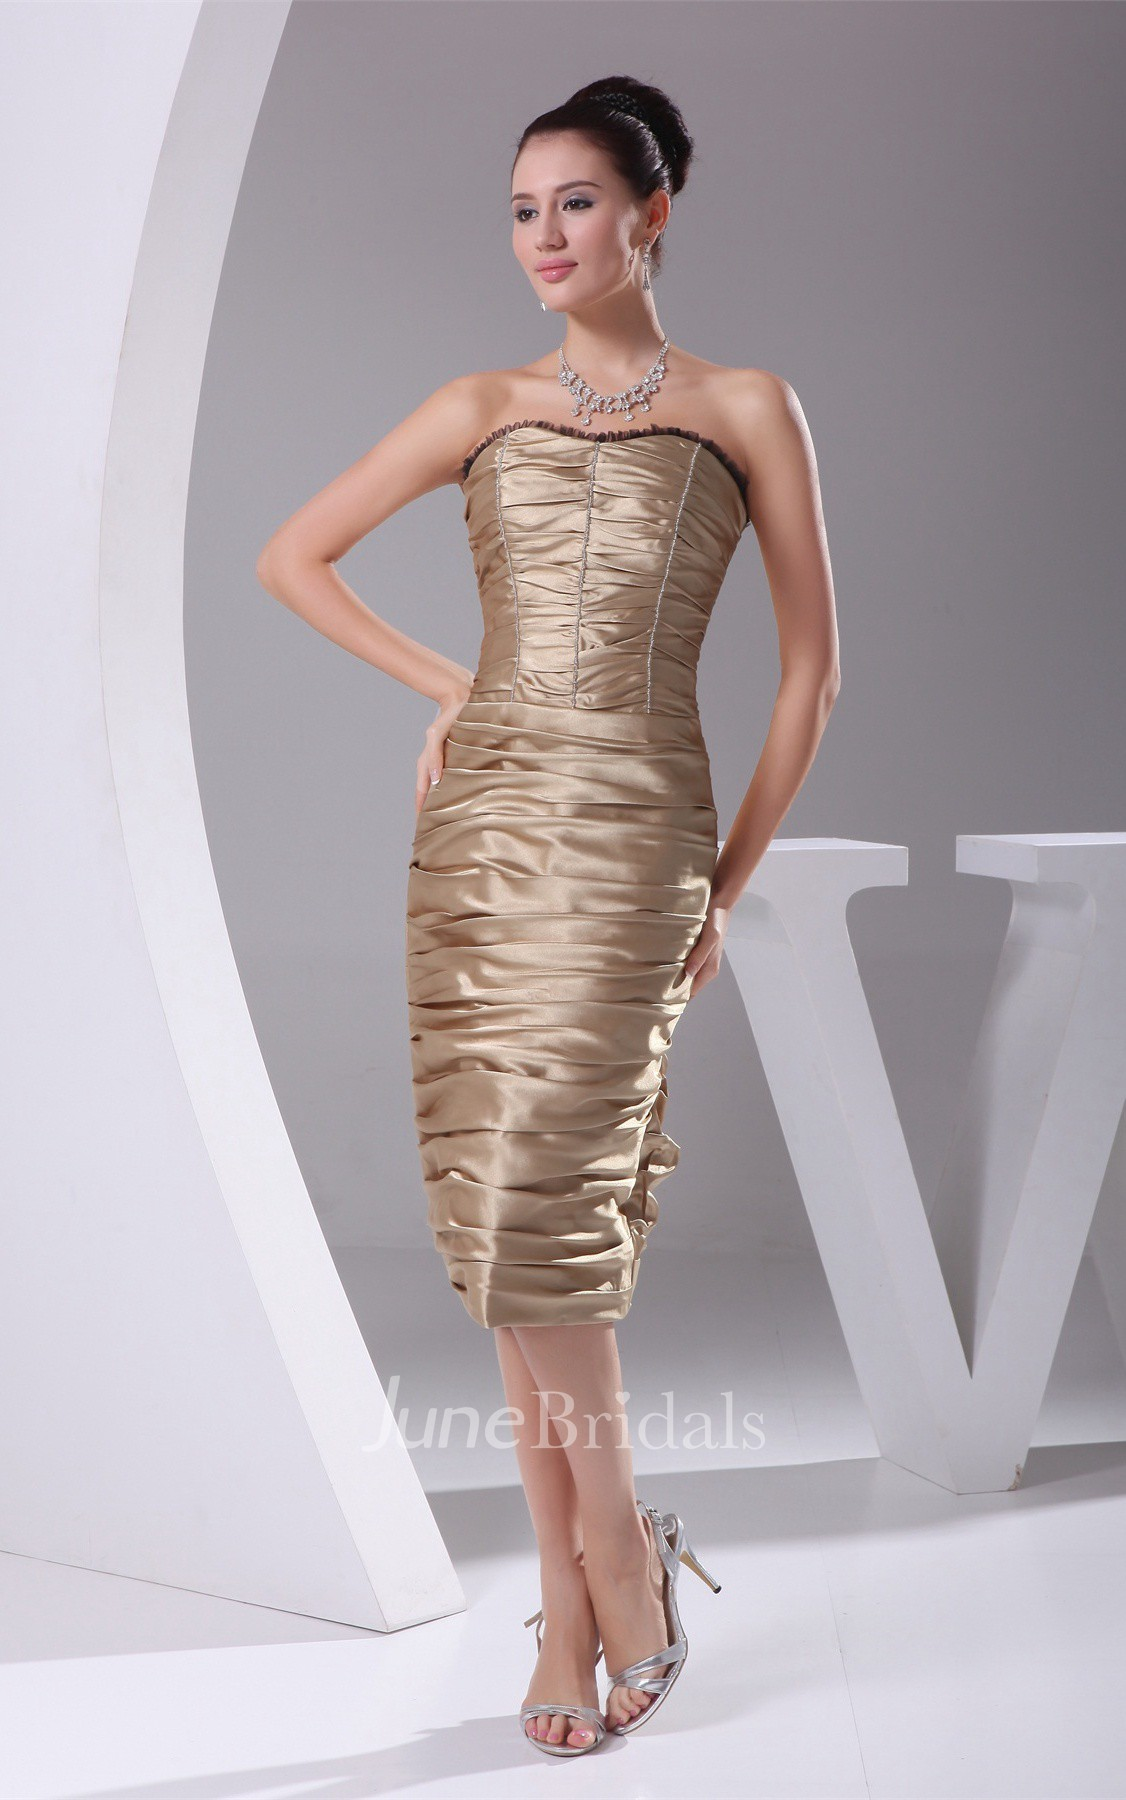 Strapless Knee Length Dress With Overall Ruched Design